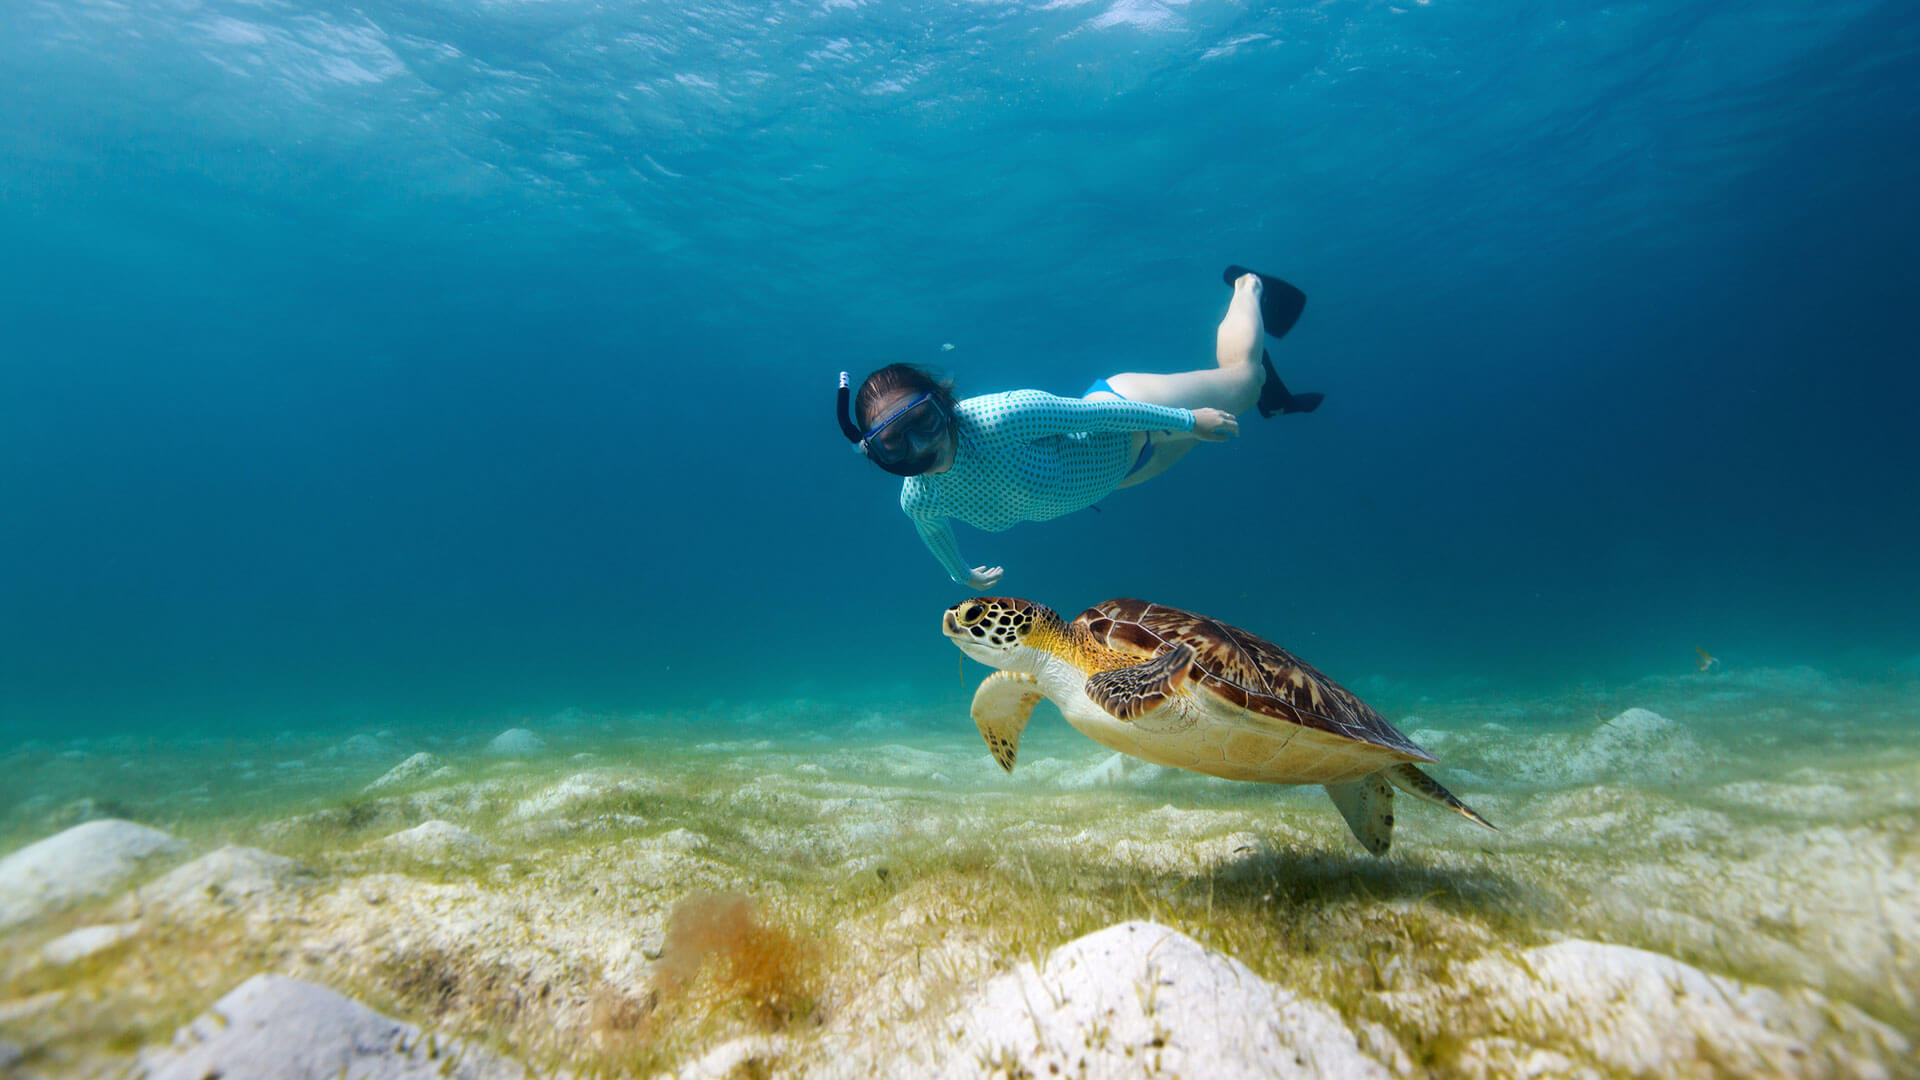 Swimming with turtles, Galapagos Islands